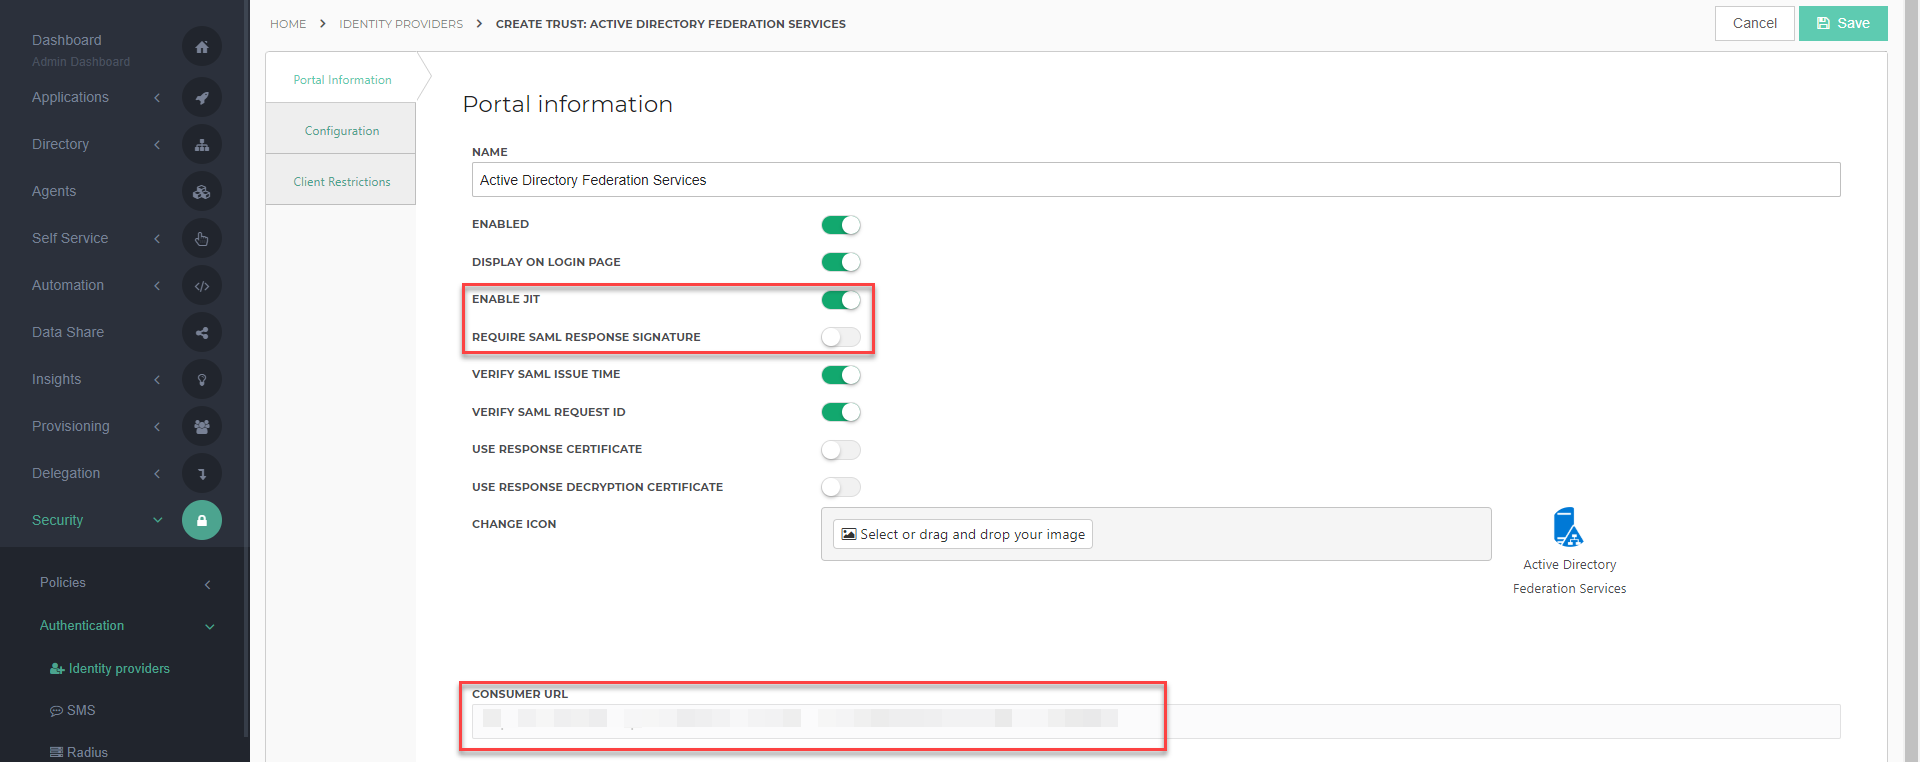 How to Configure the Active Directory Federation Services